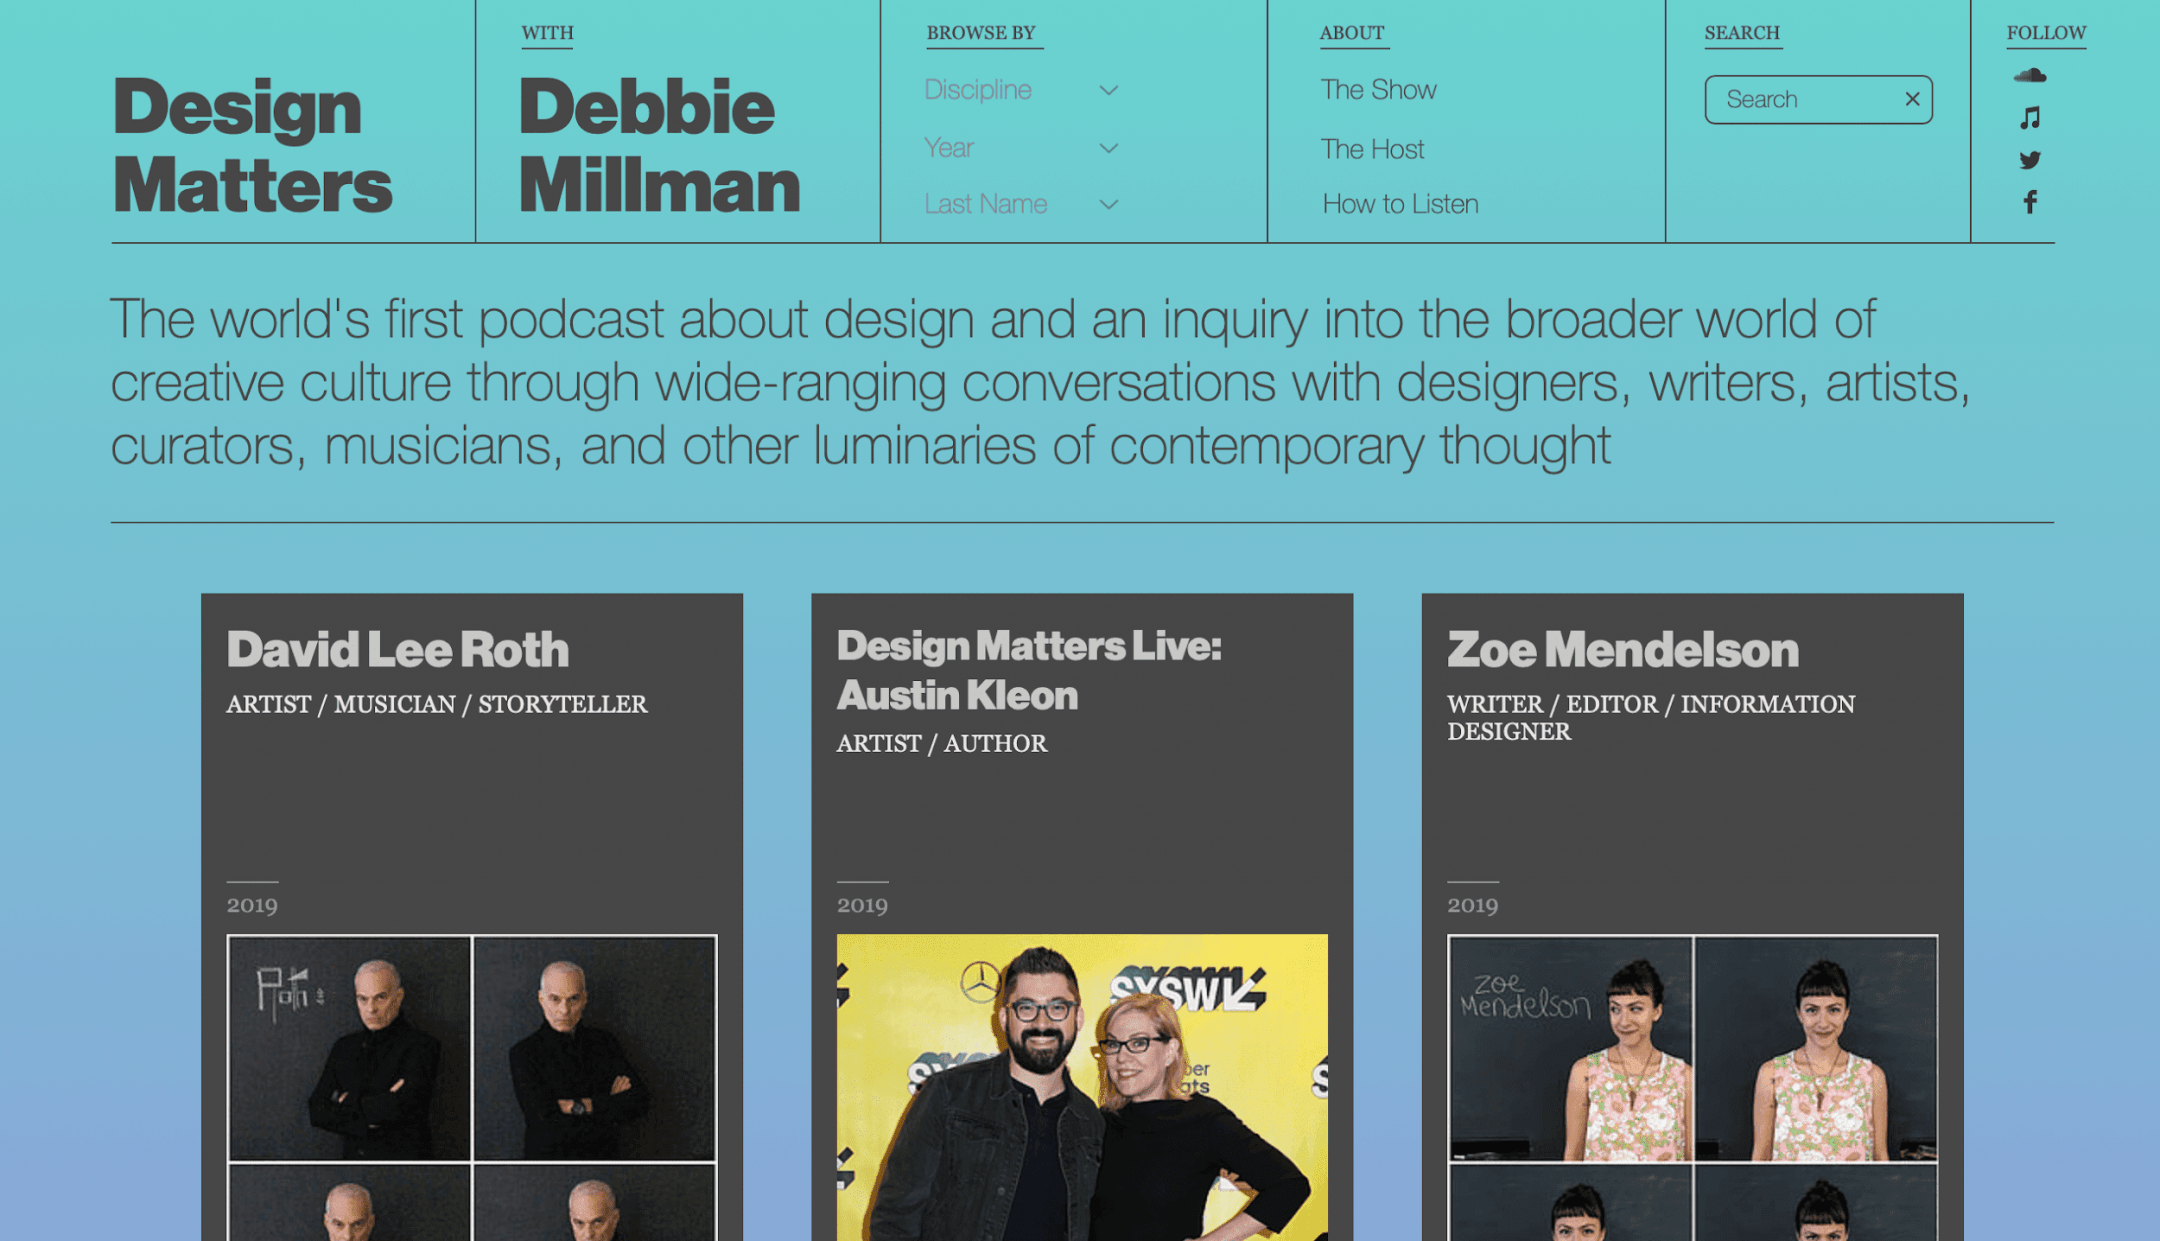 A screenshot from debbiemillman.com